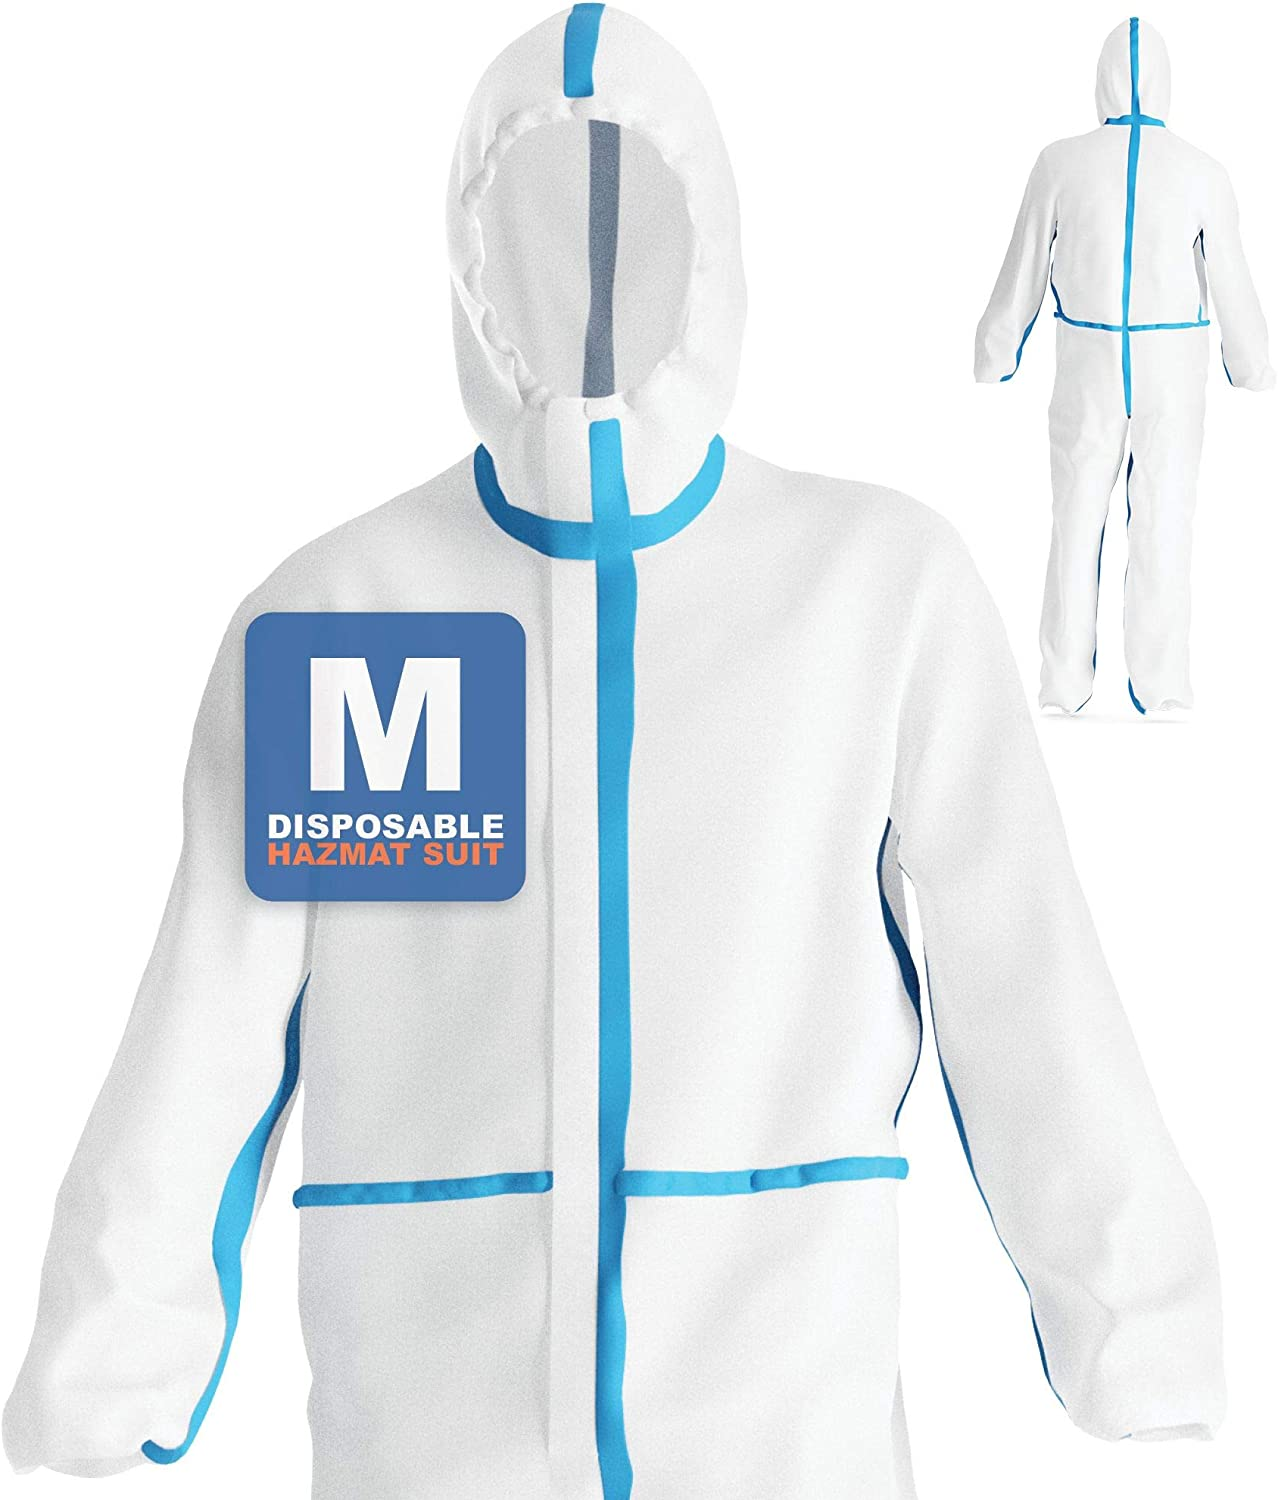 Disposable Hazmat Coverall Suit - Full Body Protective Isolation Coveralls for Surgical, Hospital, Painter, Hazard : Tools & Home Improvement